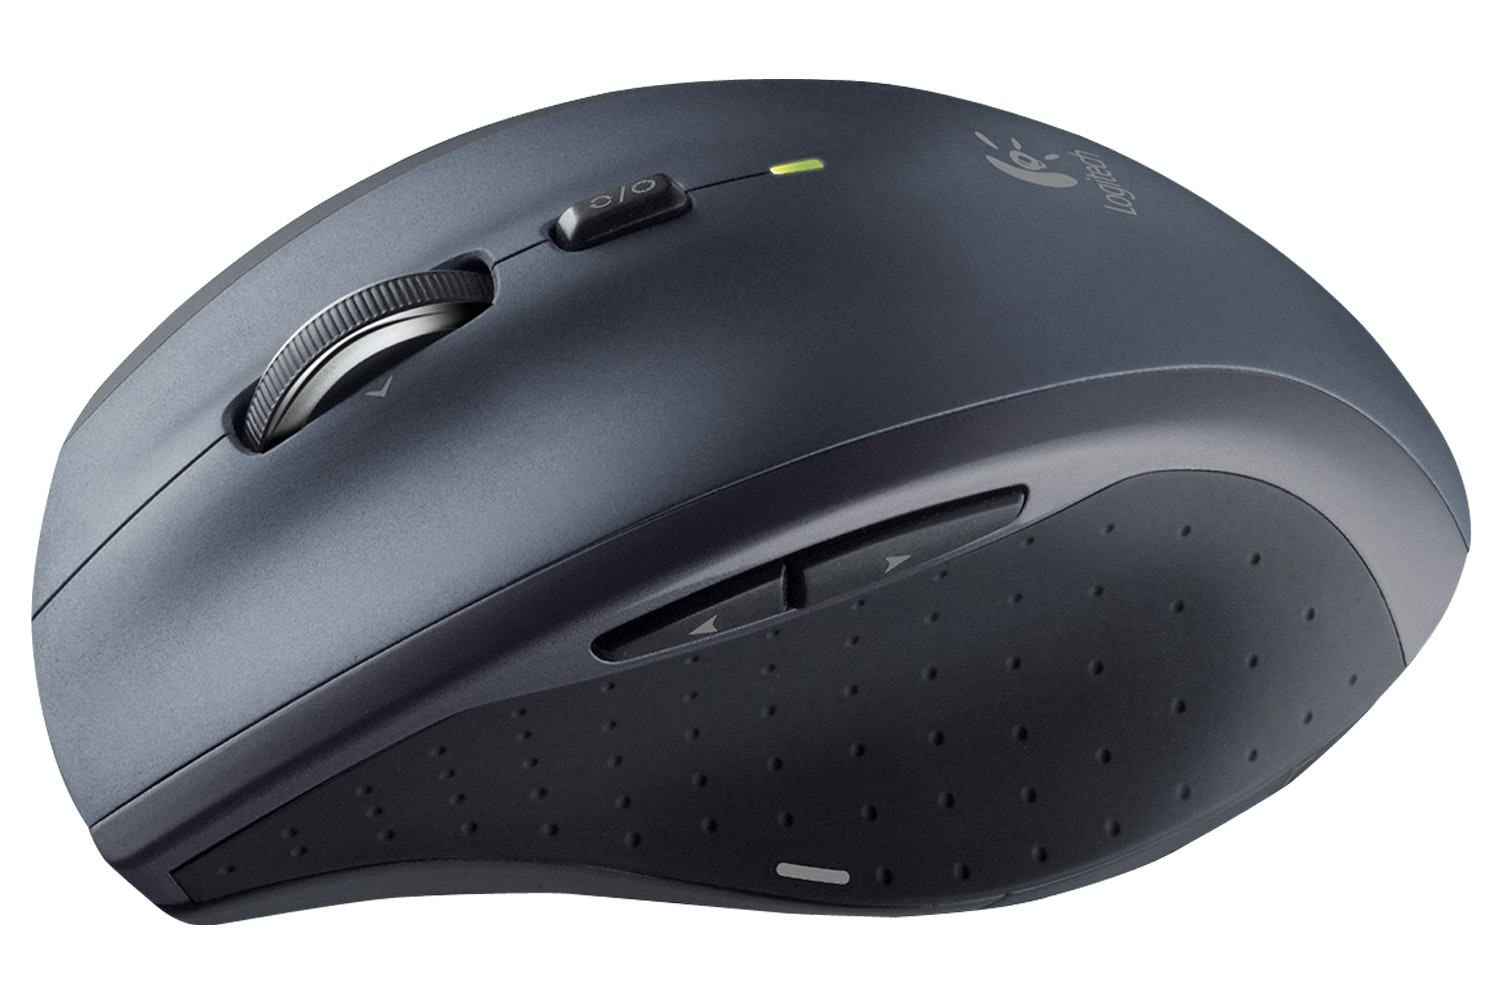 Logitech M705 Mouse | Black